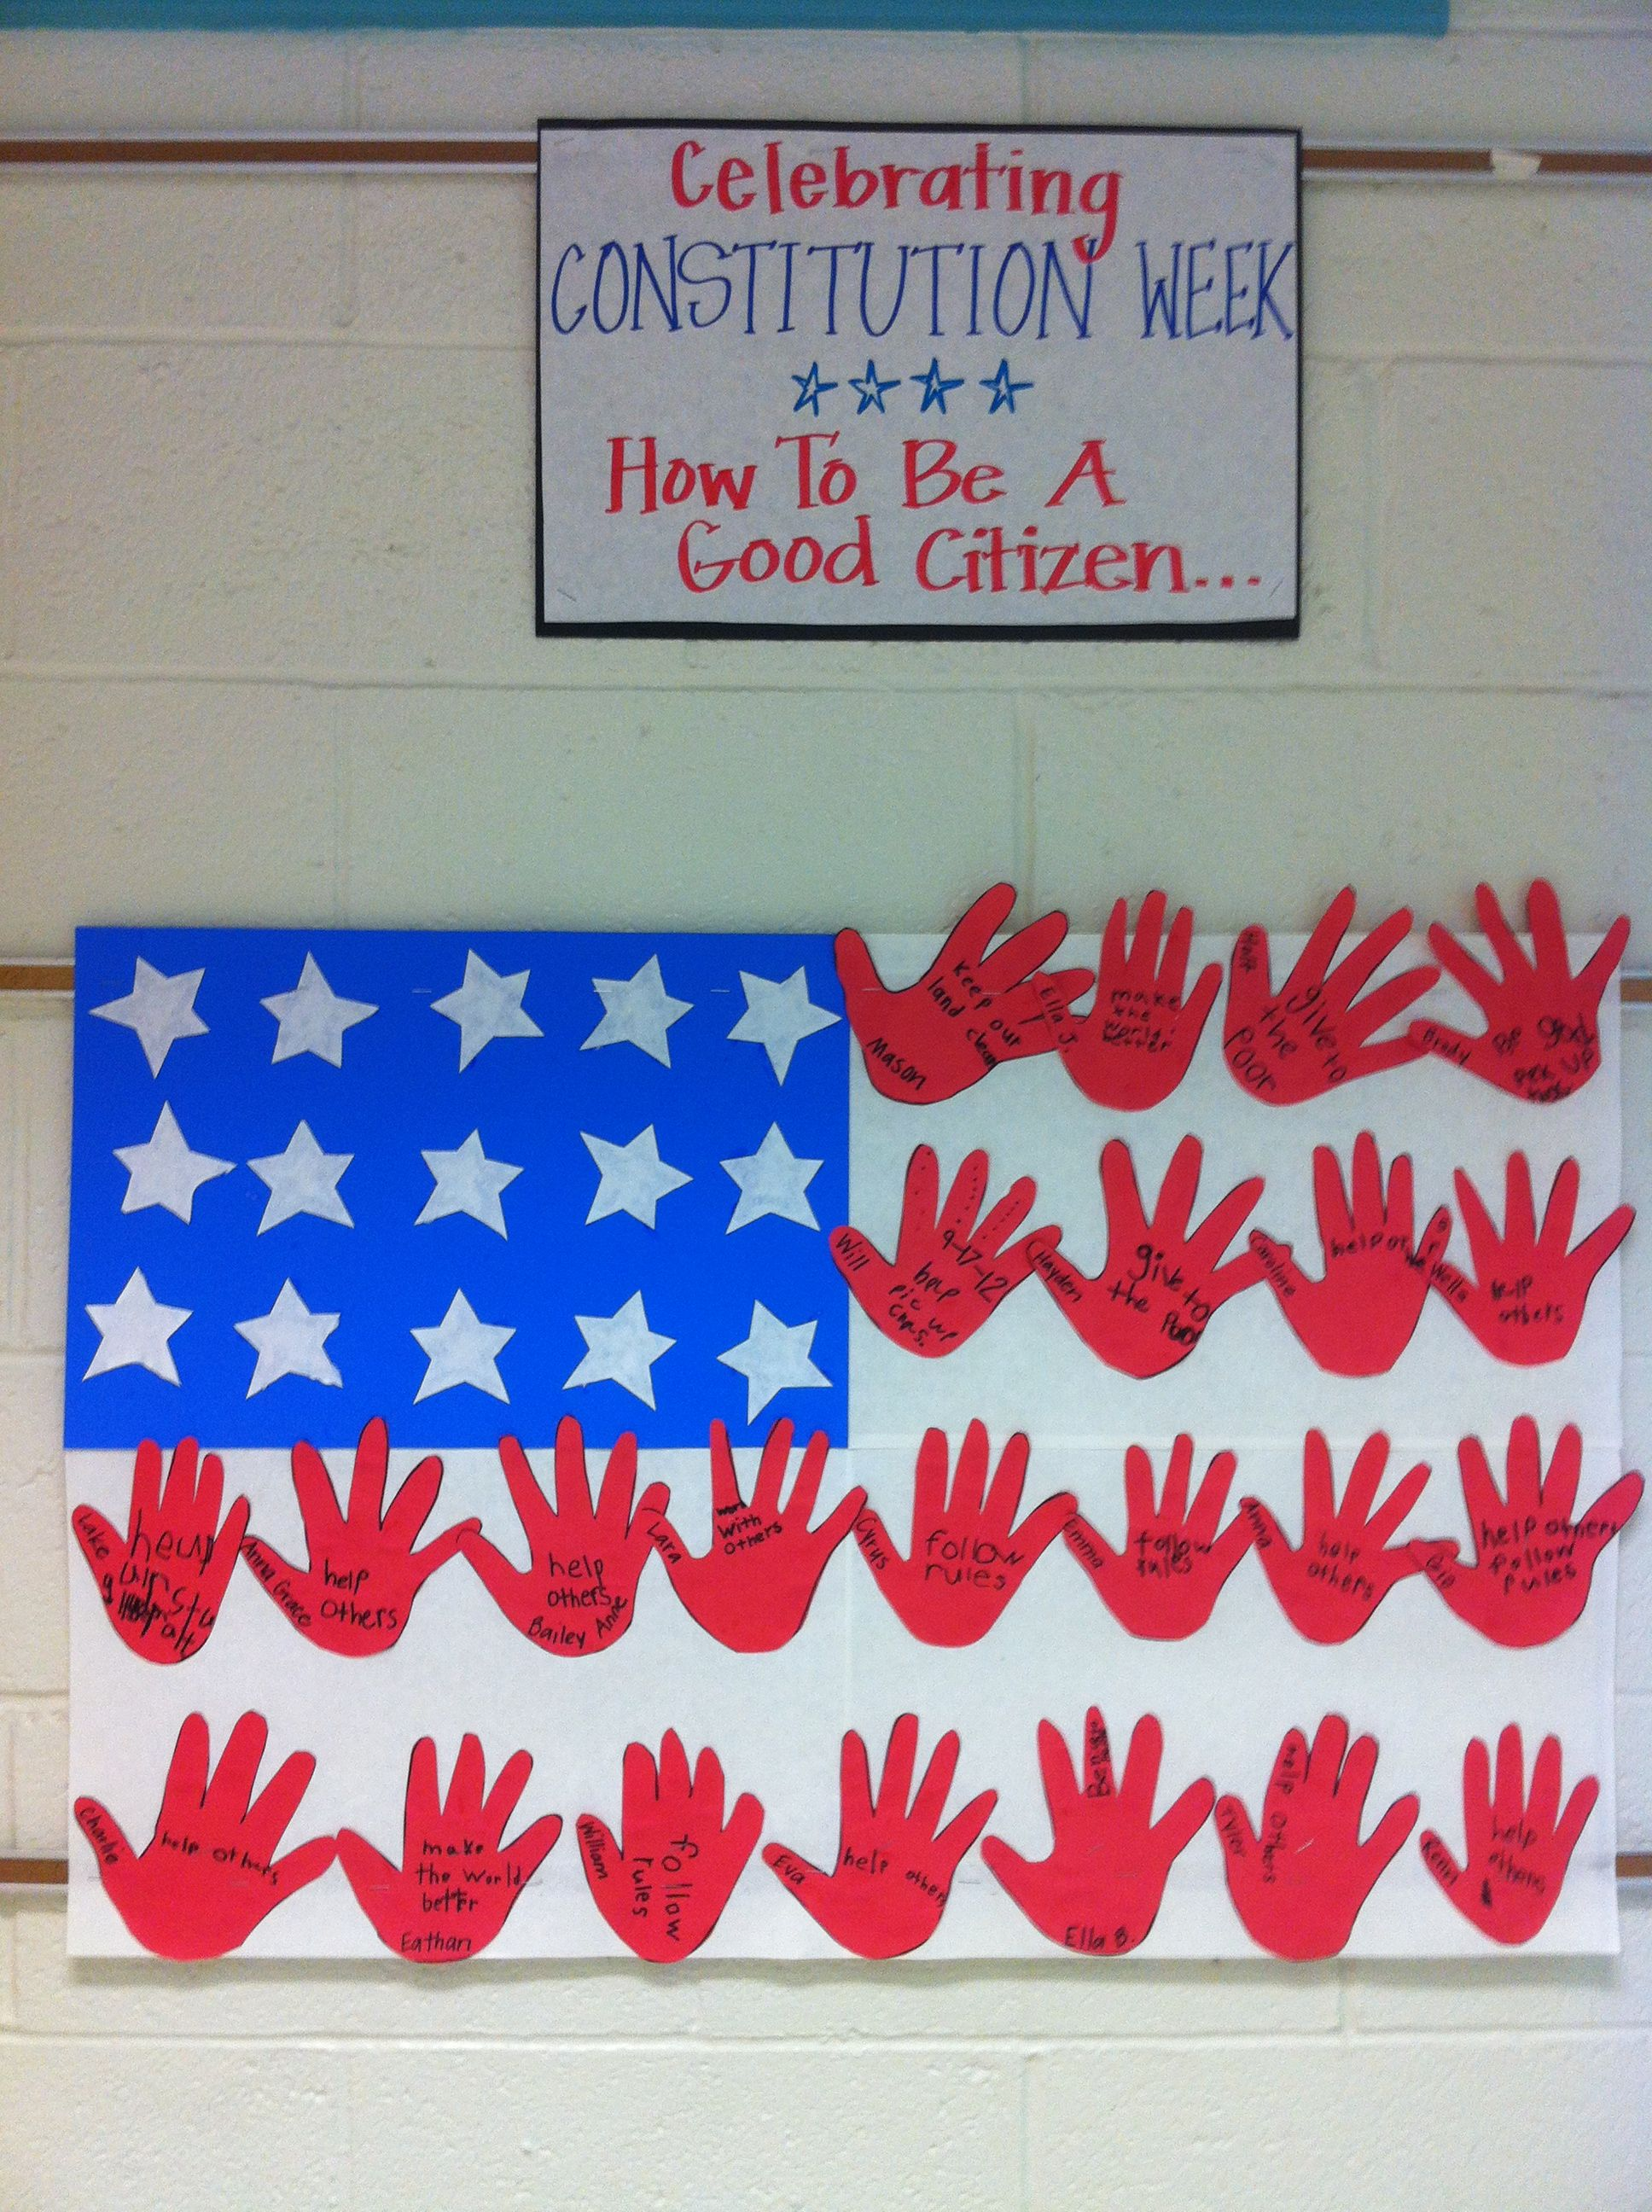 Celebrating Constitution Week How To Be A Good Citizen